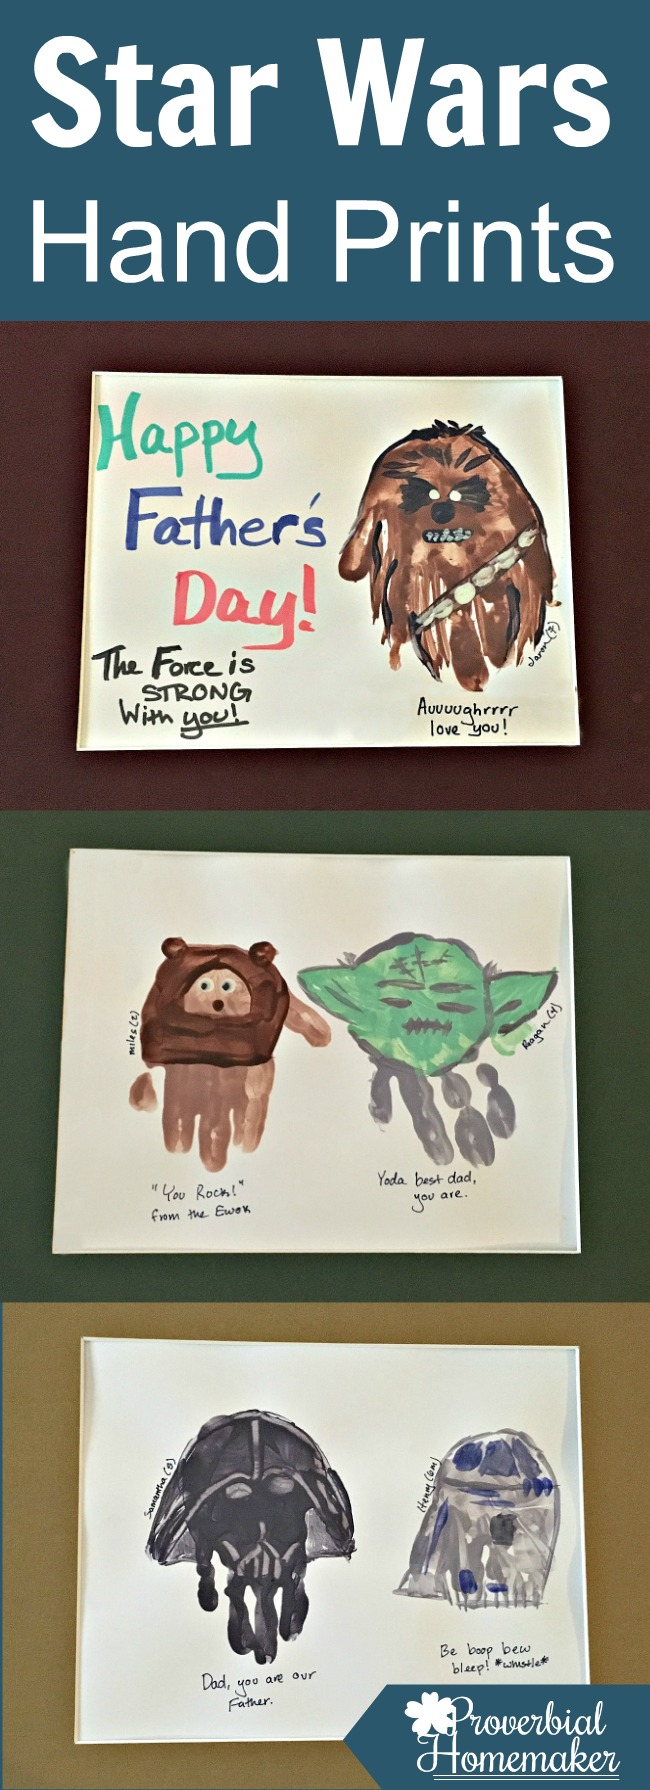 Star Wars Hand Prints for Father's Day - Proverbial Homemaker